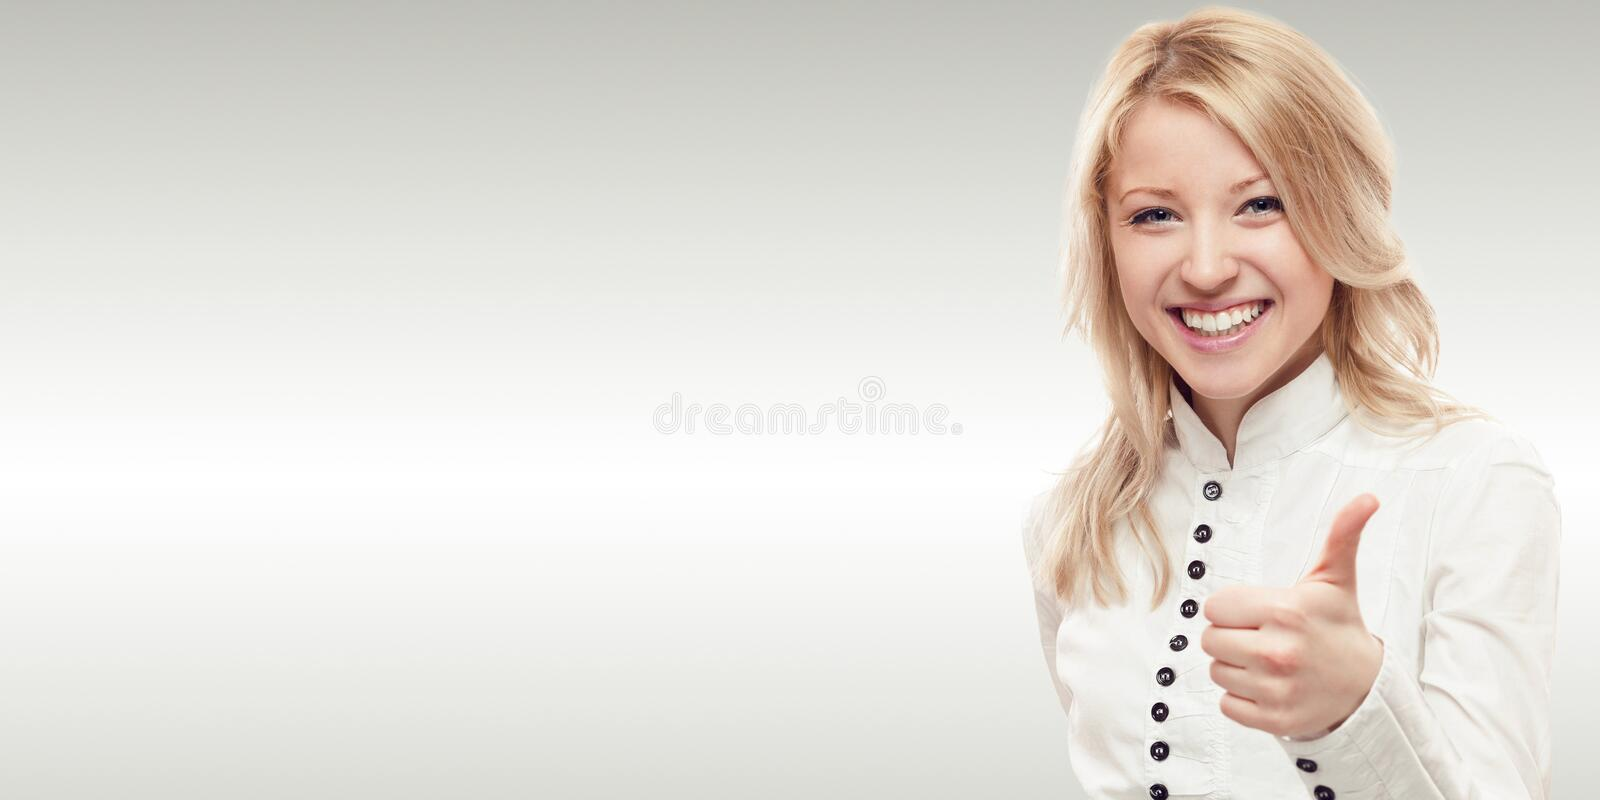 Smiling young business woman stock photos